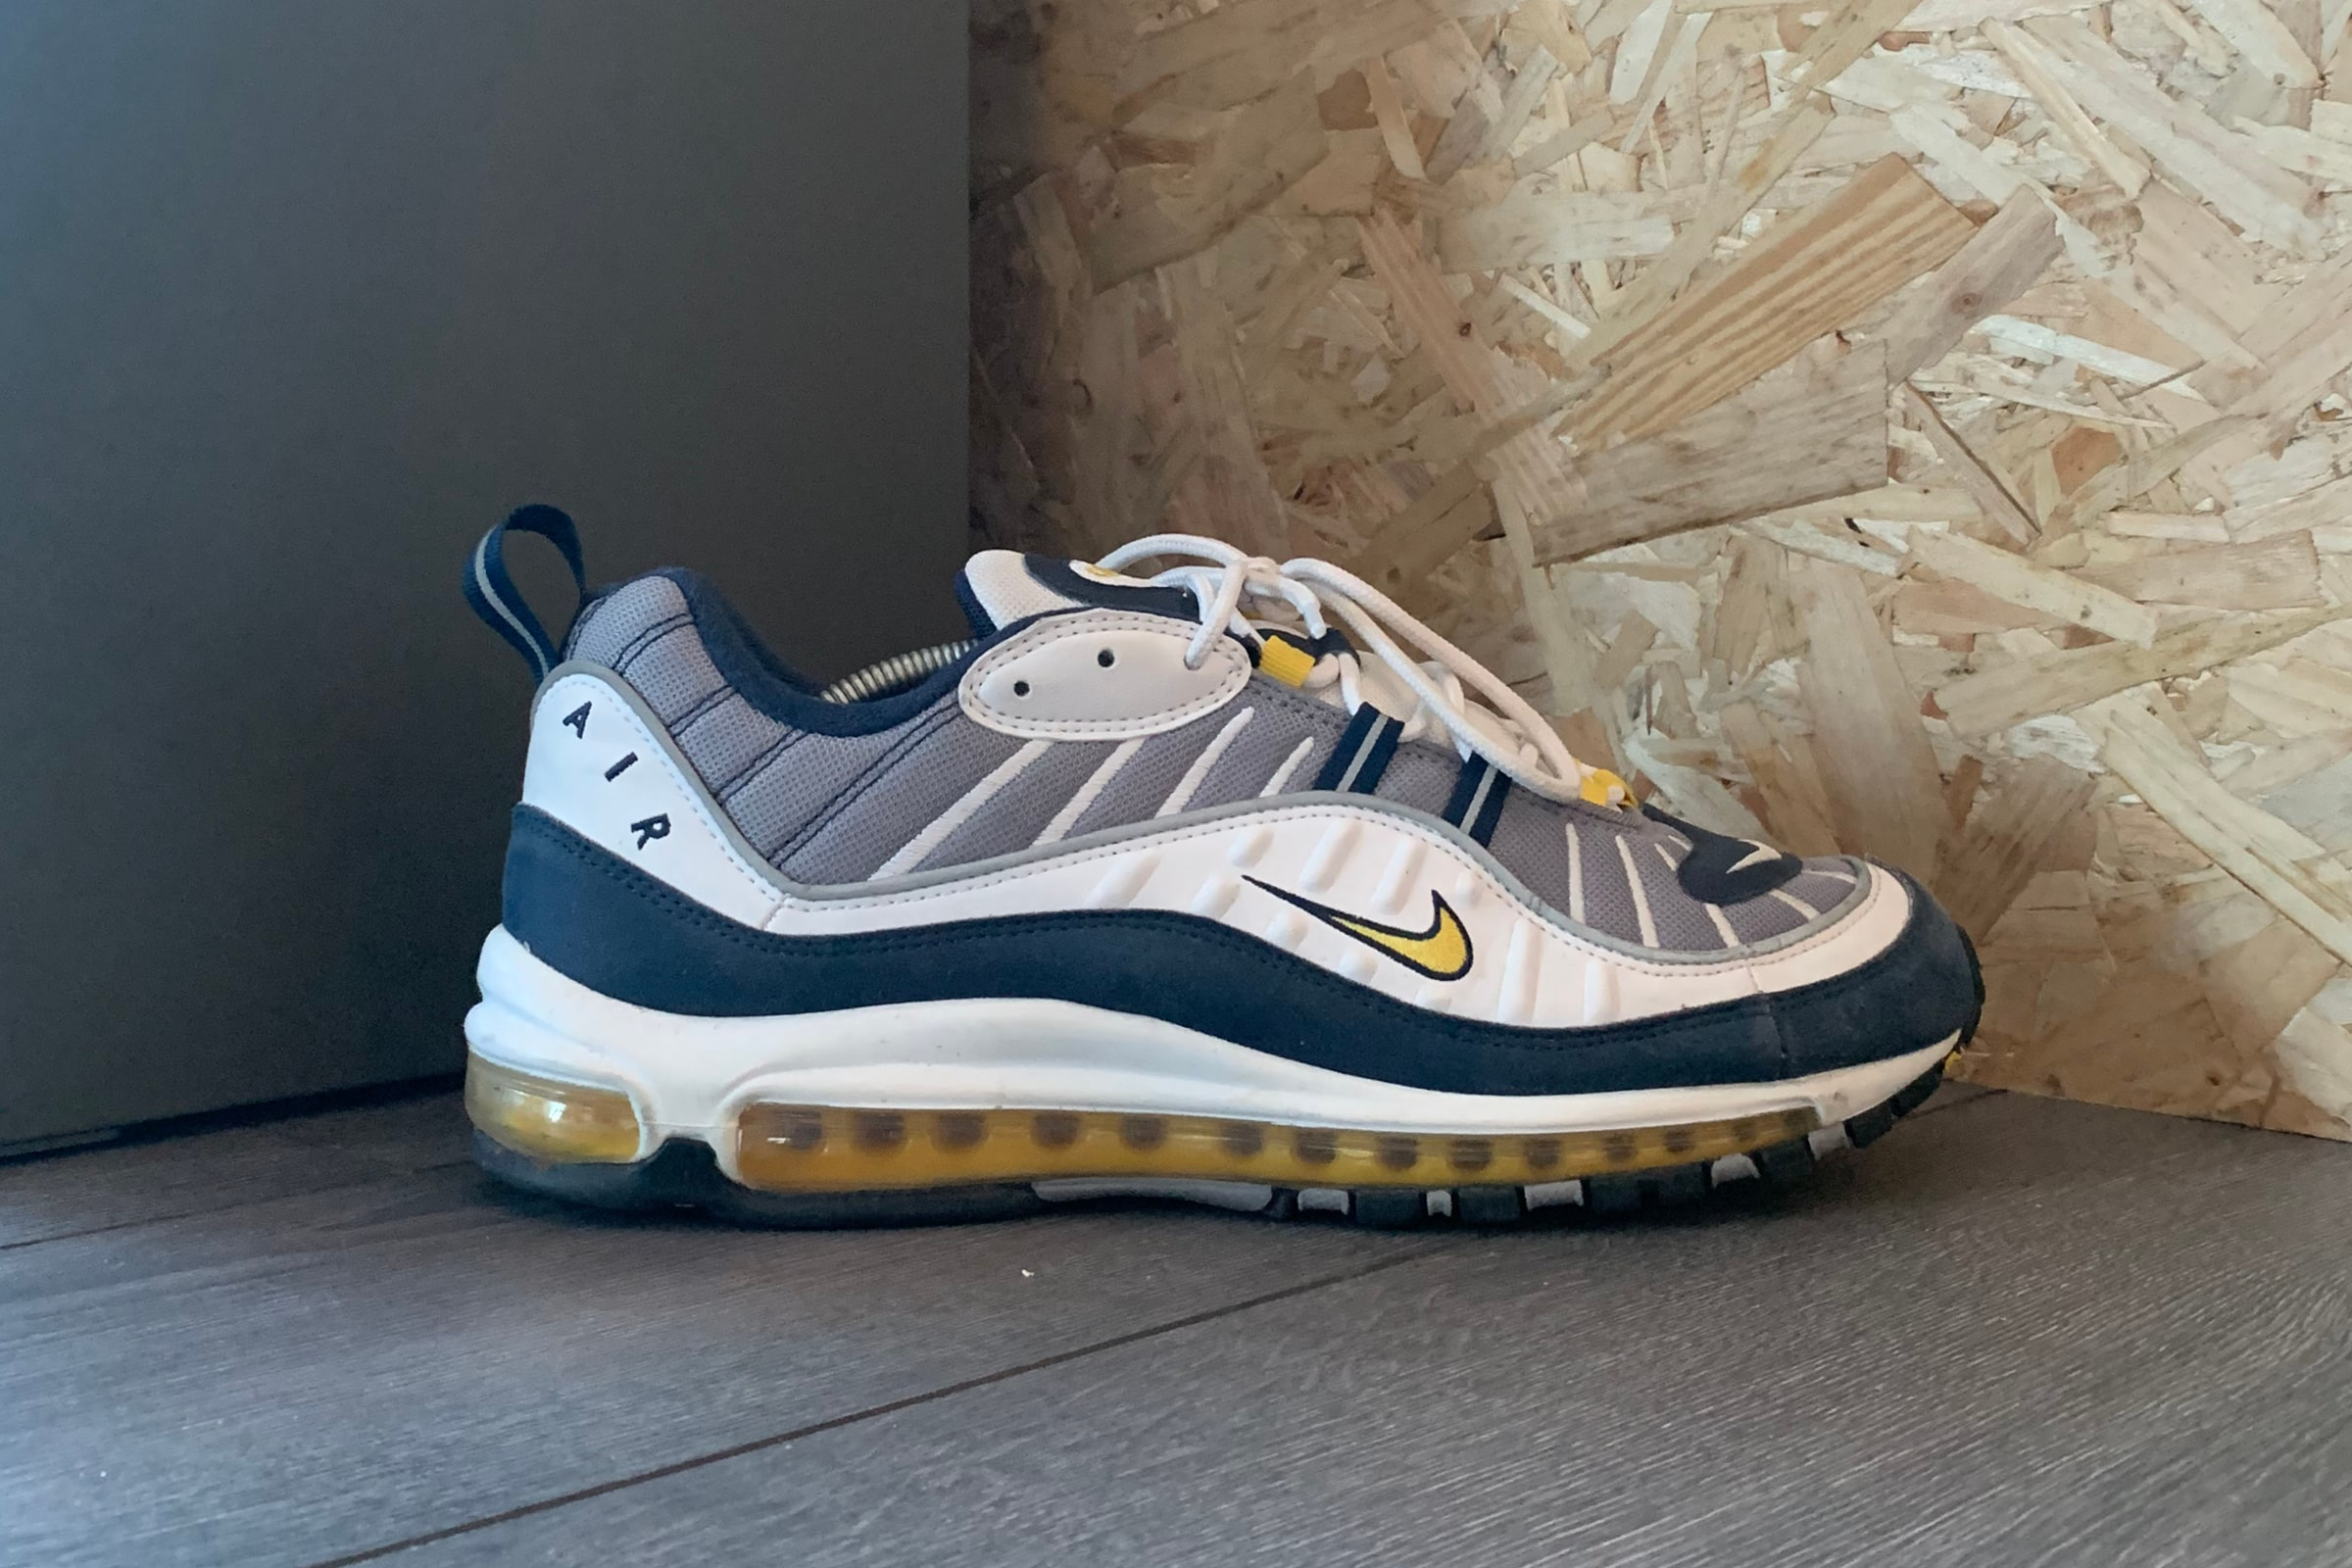 Nike Air Max 98 'Tour Yellow' - 2018